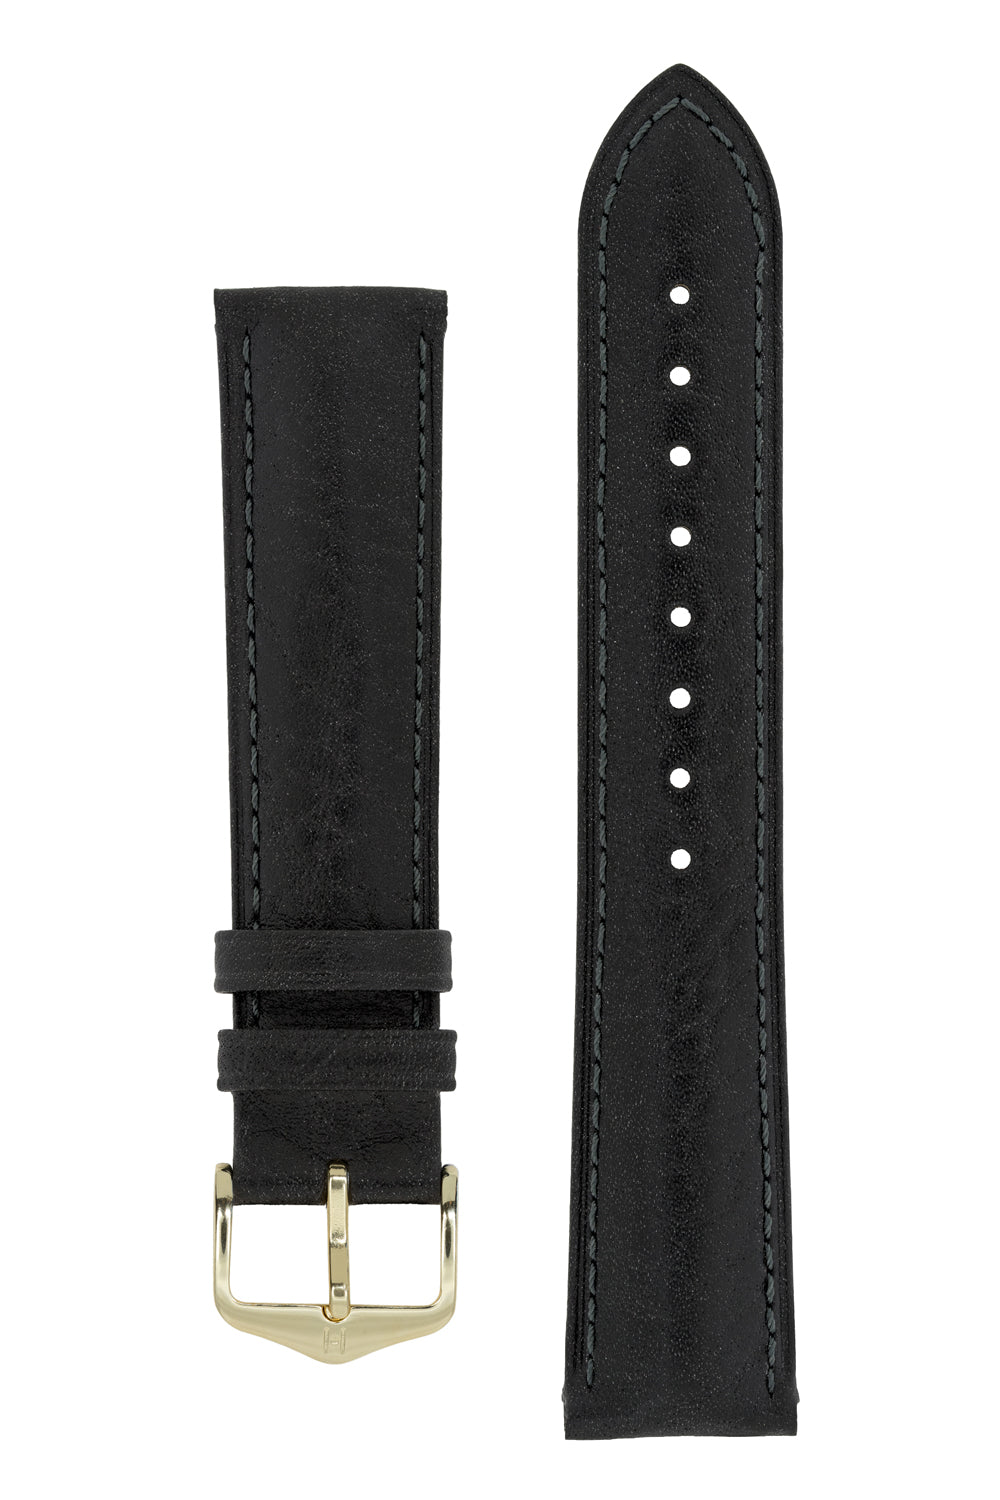 08mm Watch Straps